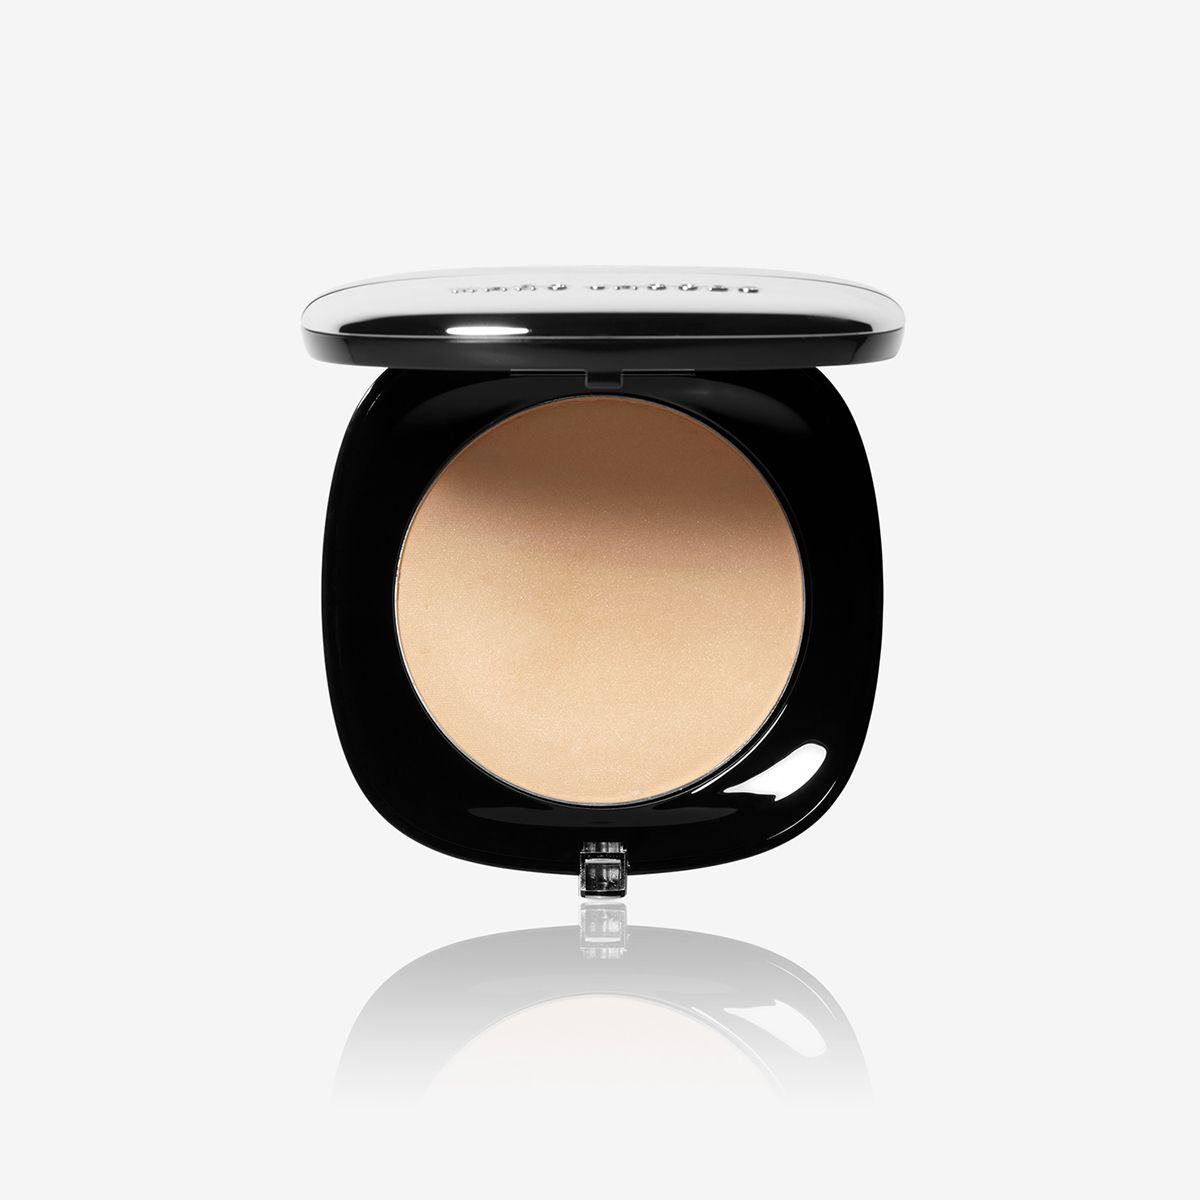 We Tested All The On-Sale Marc Jacobs Beauty Products—These Were the Standouts 16